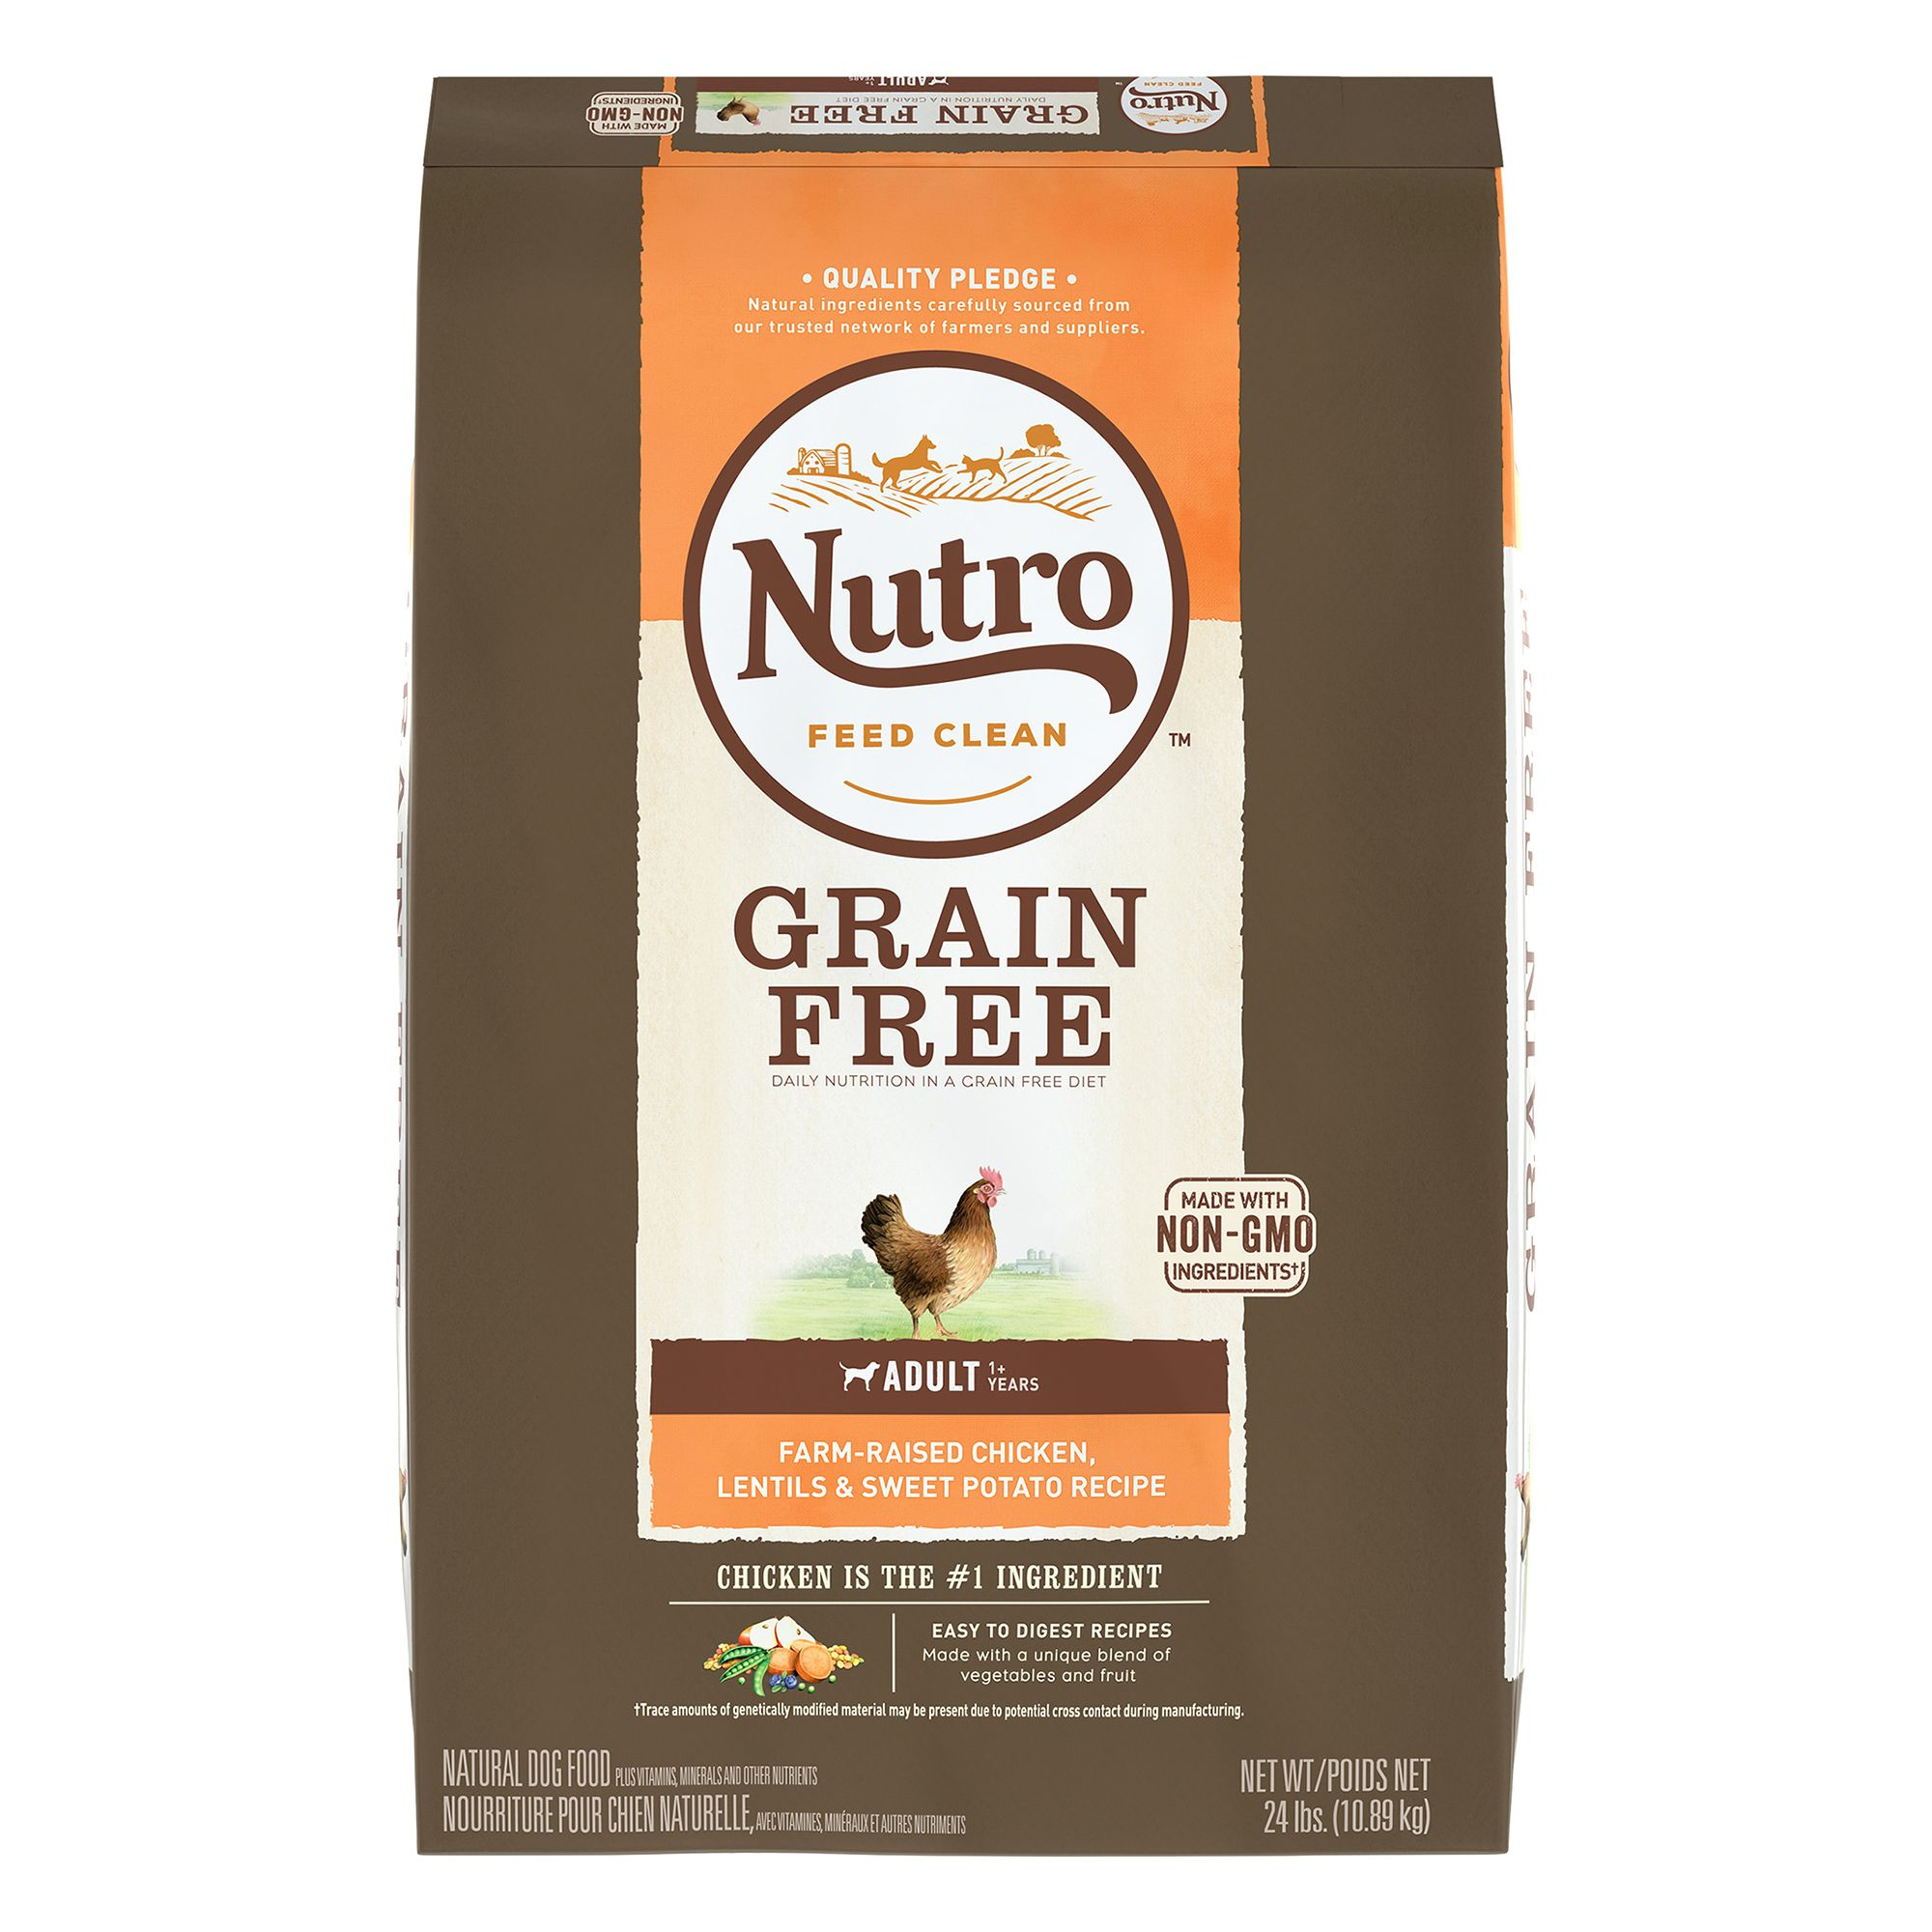 Nutroreg Grain Free Adult Dog Food  Chicken and Lentils size 24 Lb